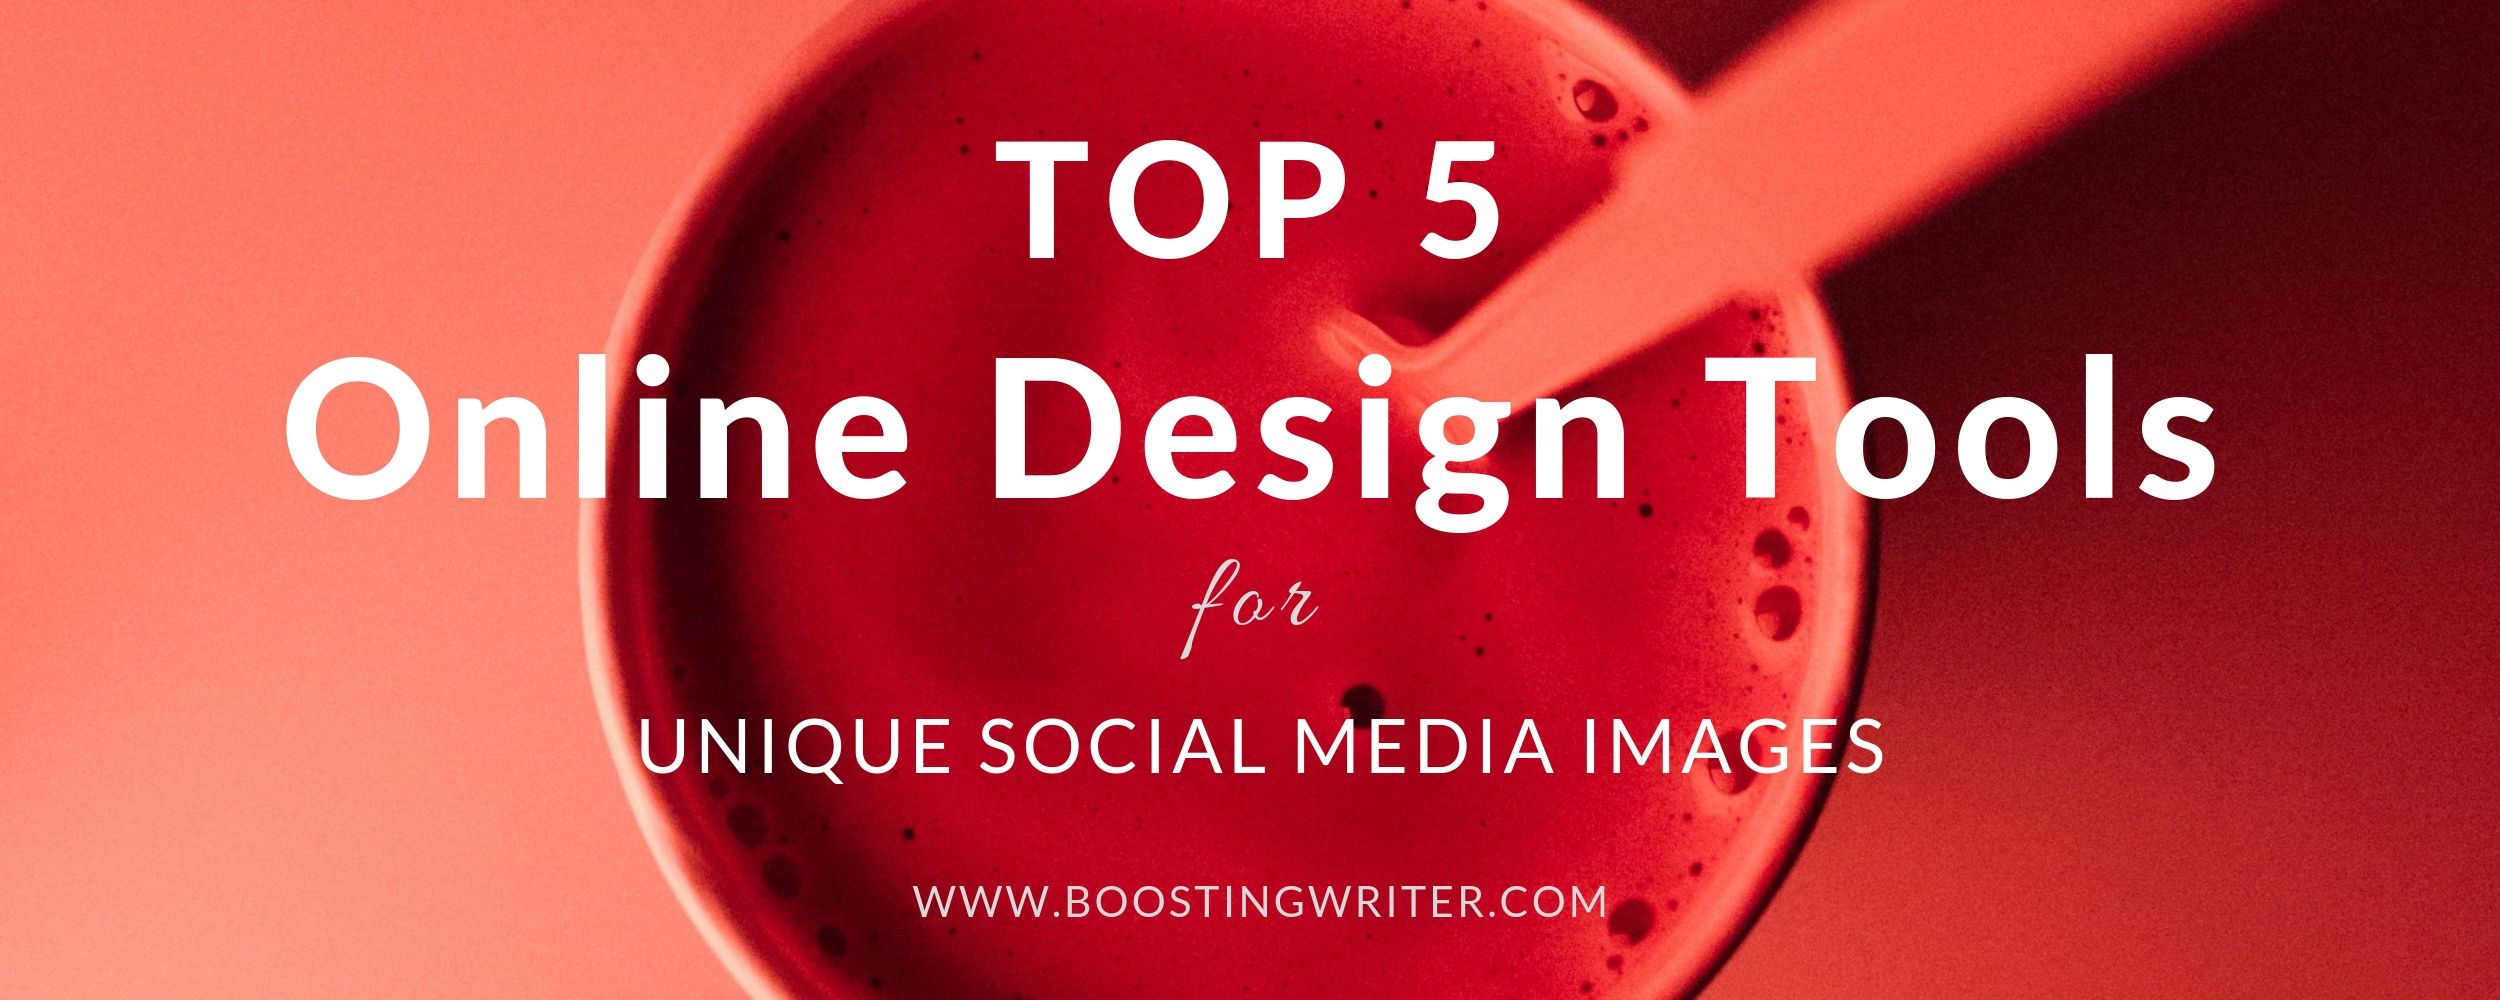 Top 5 online design tools for unique social media images - cover.jpg